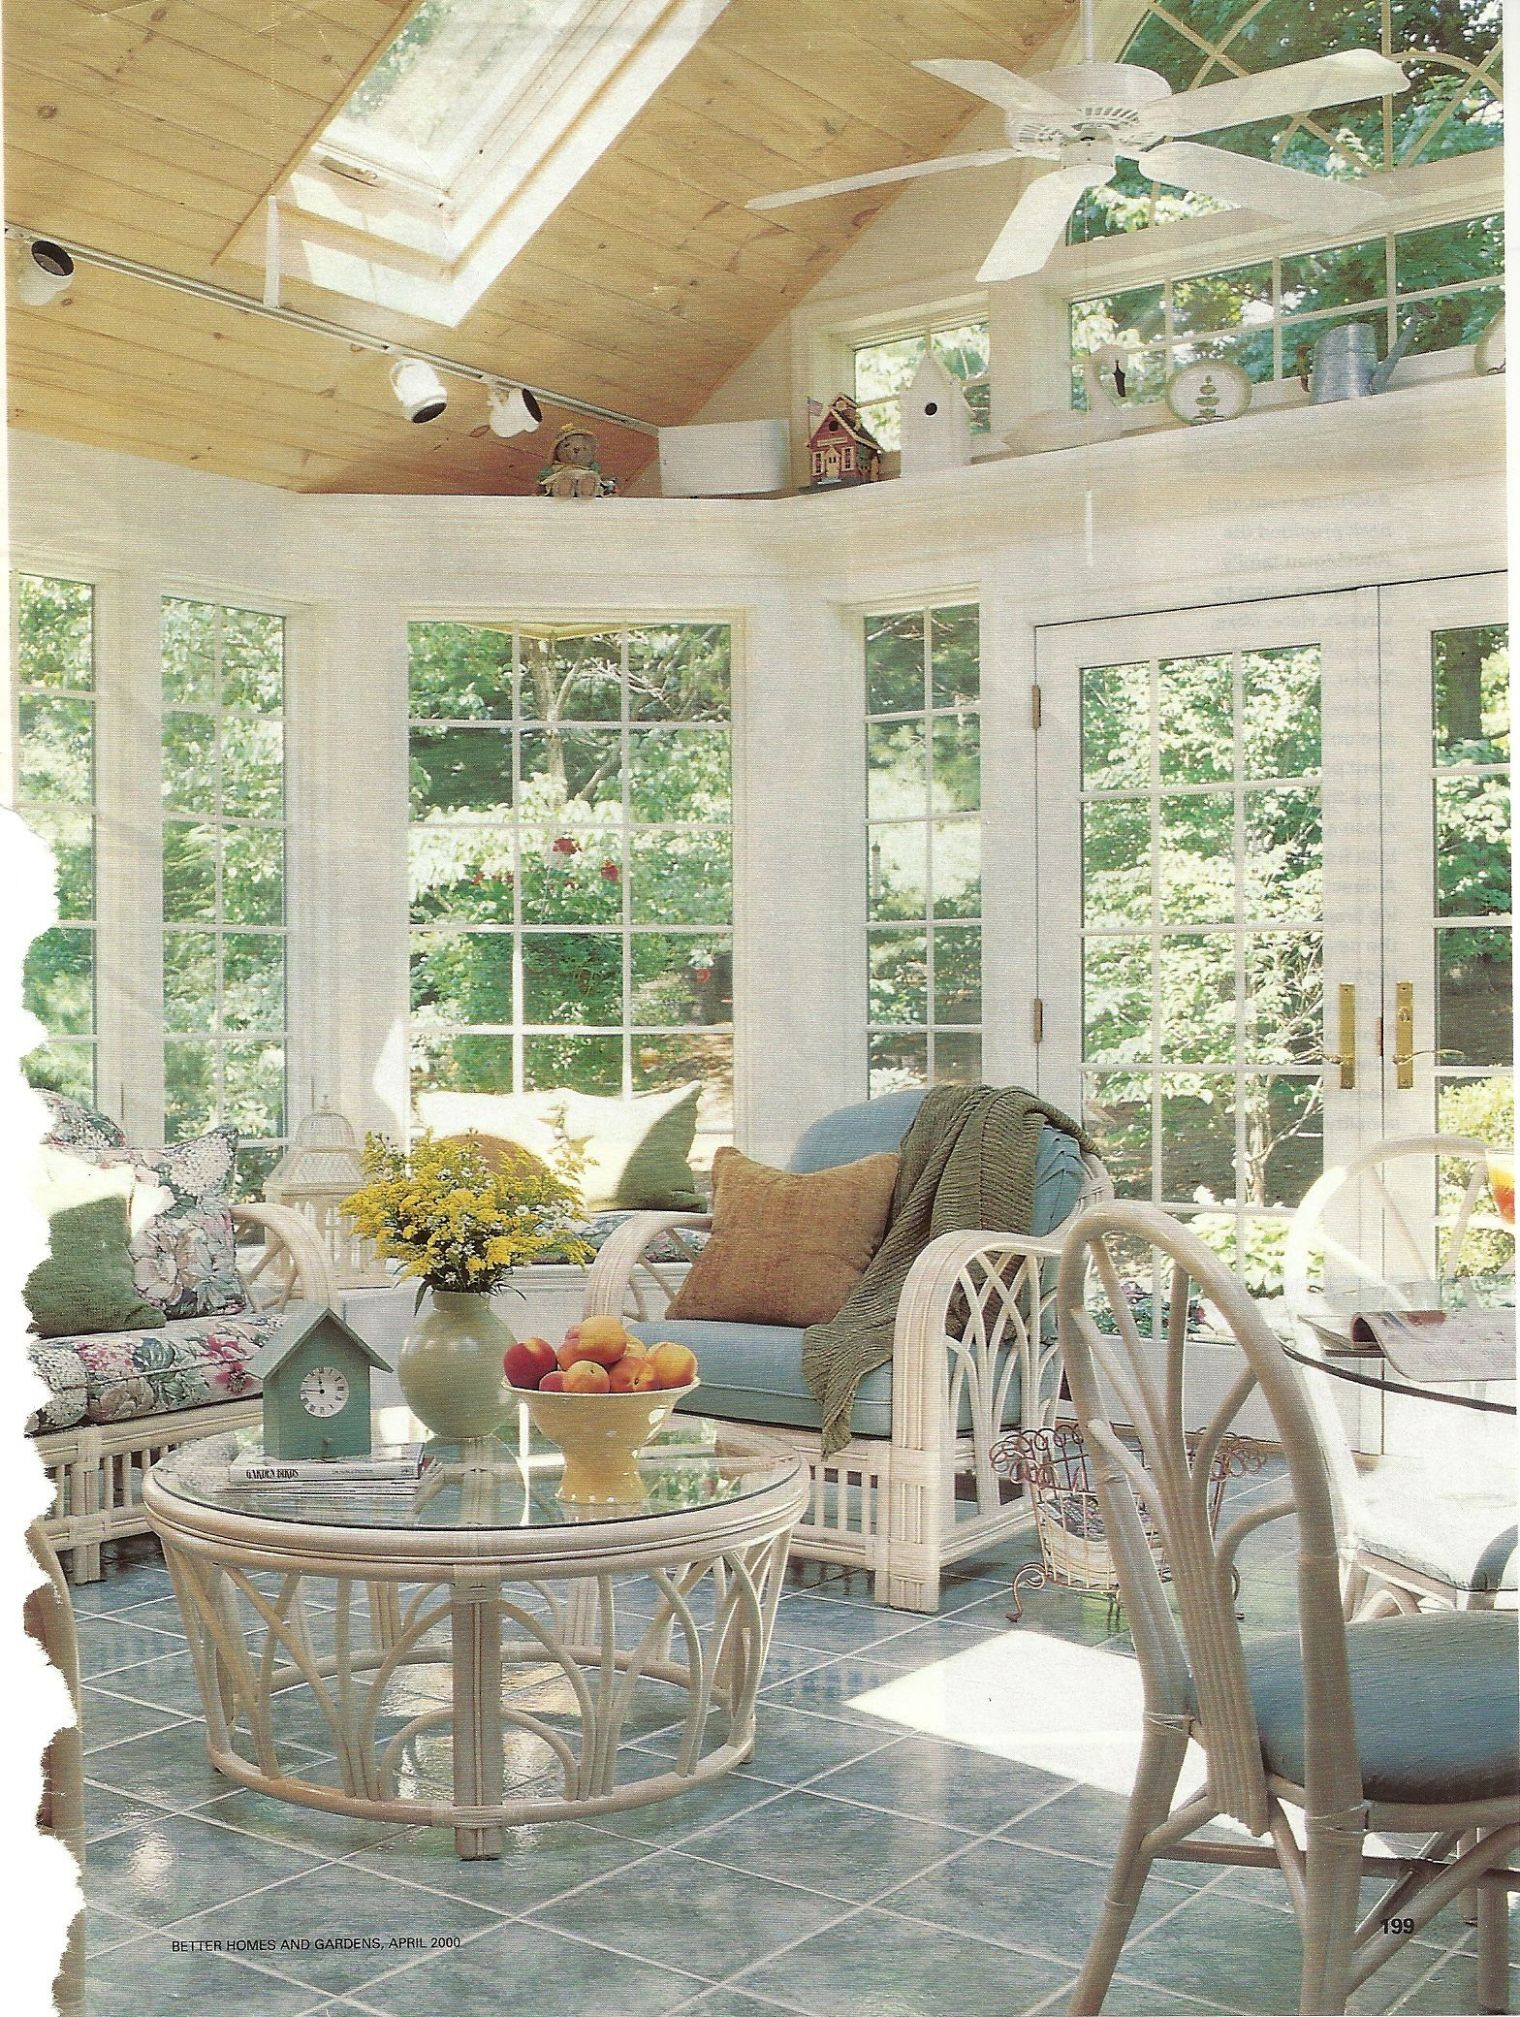 Change to a lower flat ceiling and full length windows (With ..